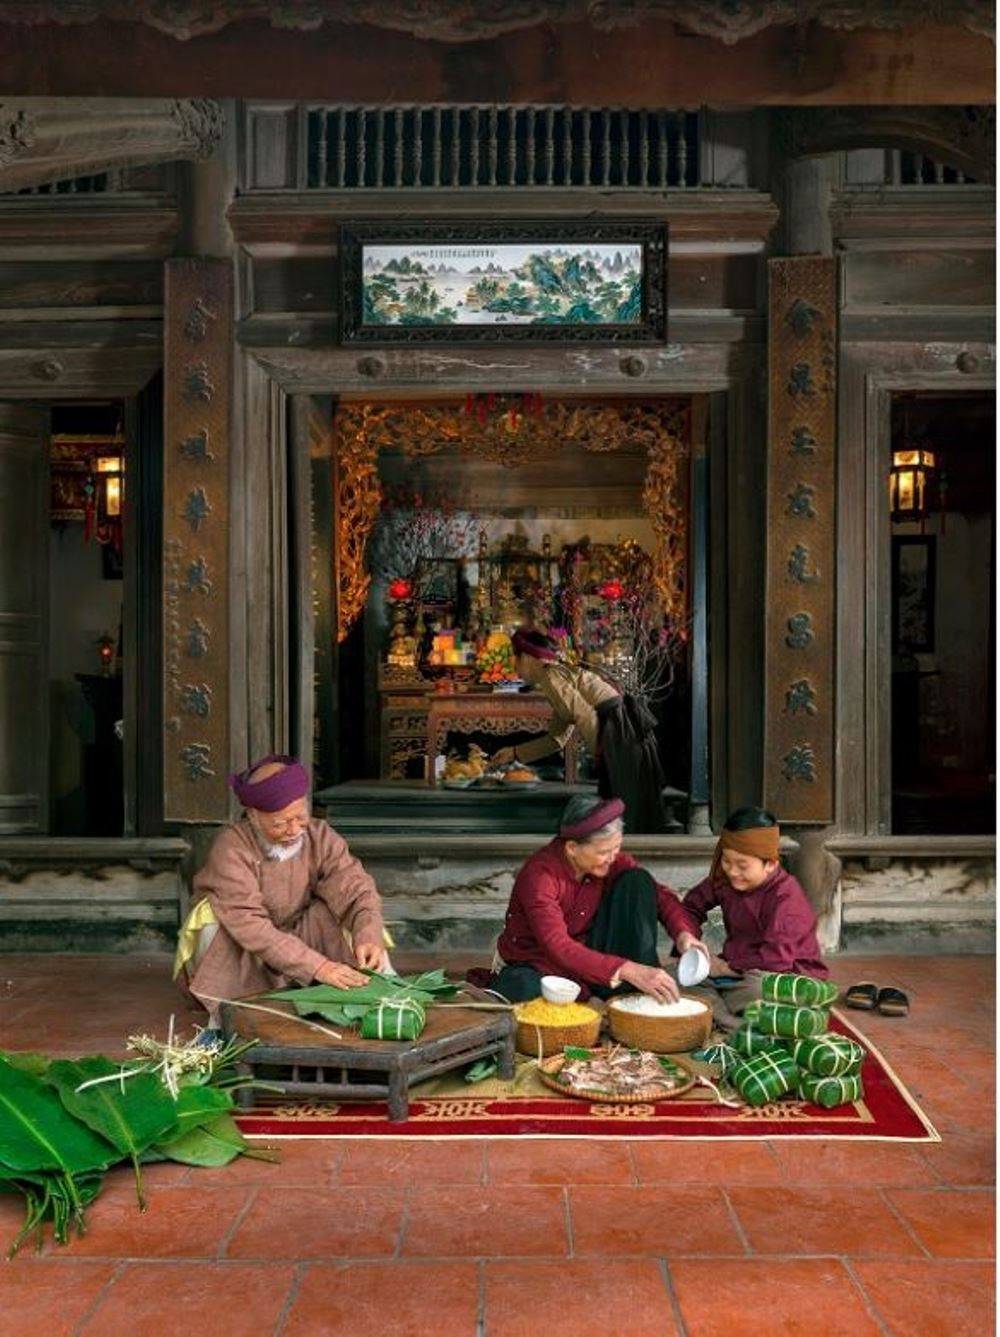 Heritage photos, Vietnam's hidden charm, Impressive works, photo collections, single cover photos